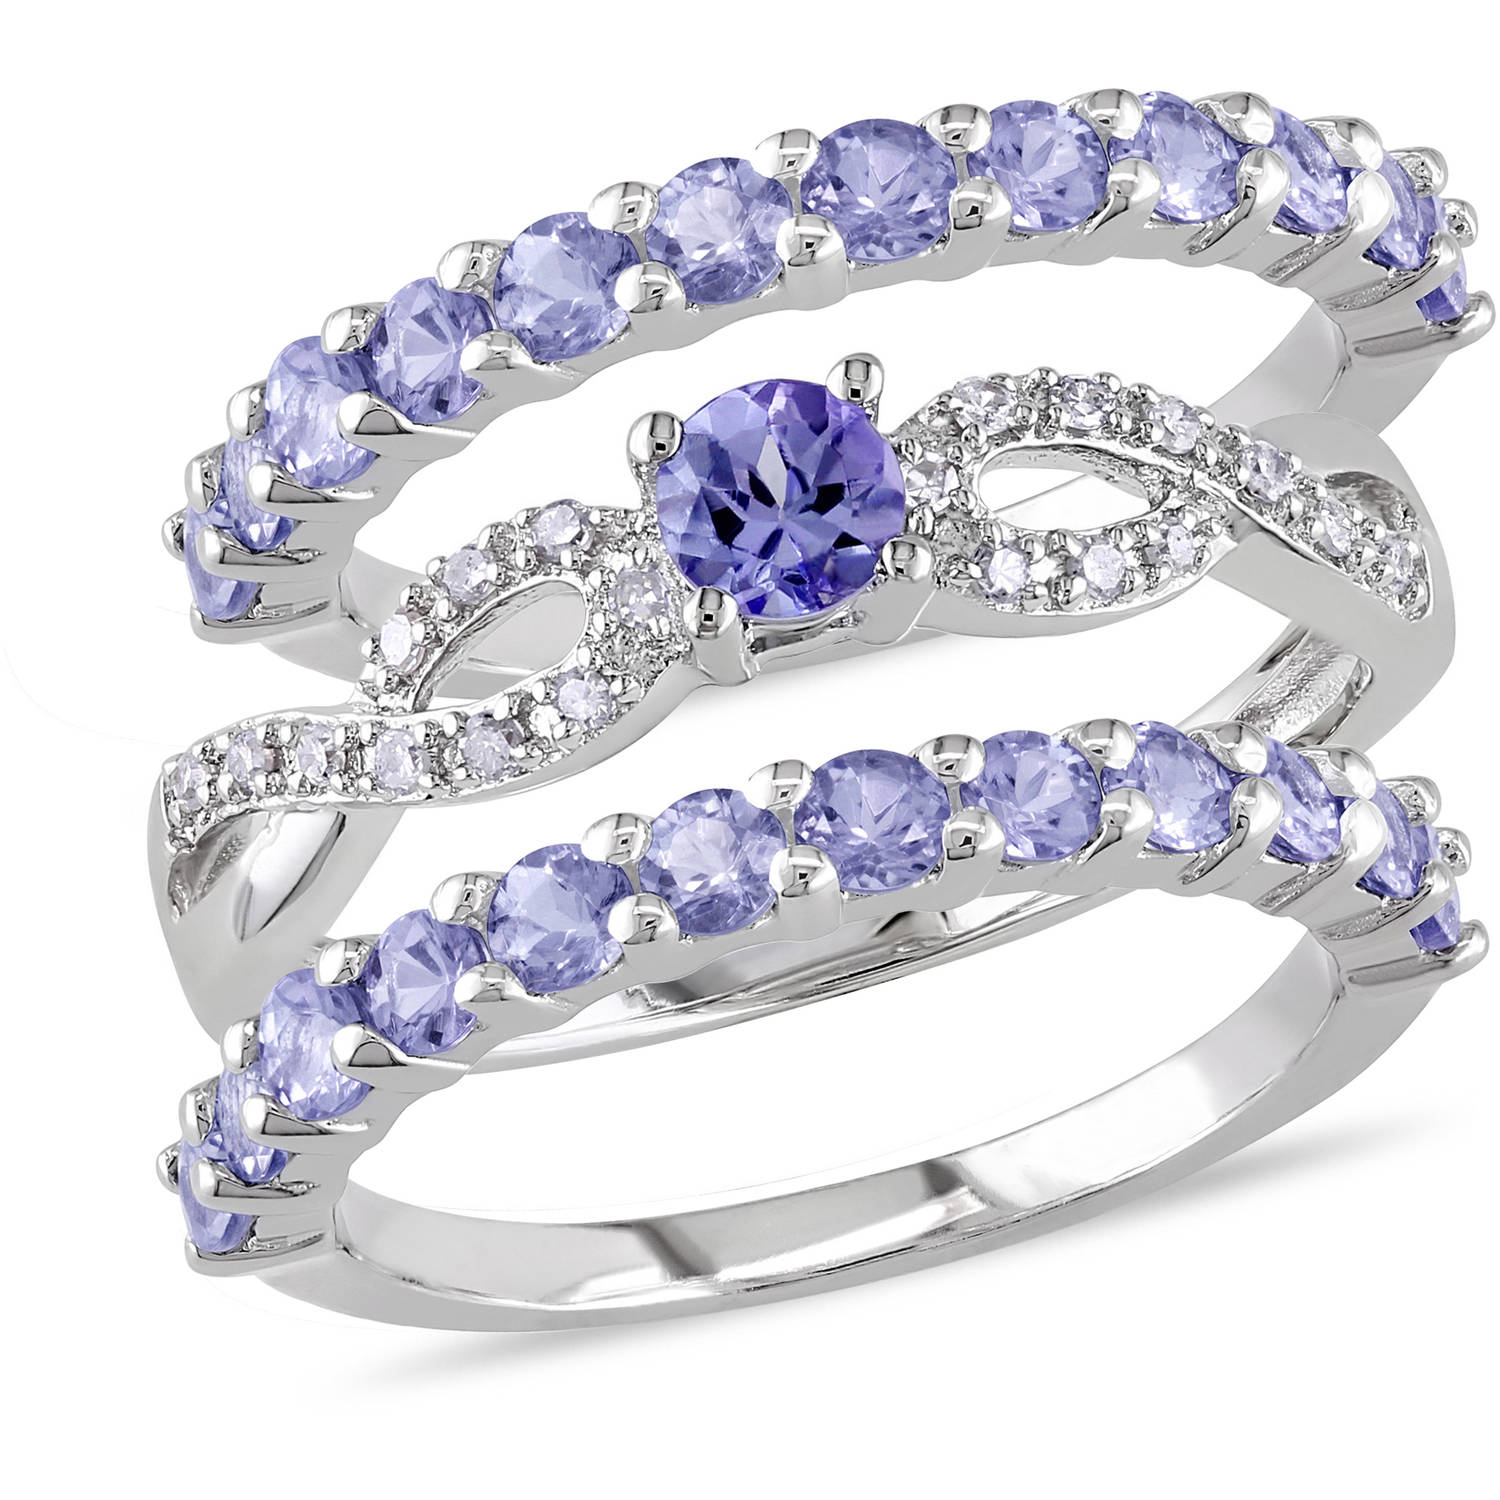 2 Carat T.G.W. Tanzanite and 1/10 Carat T.W. Diamond Sterling Silver Infinity Design Semi-Eternity Ring Set